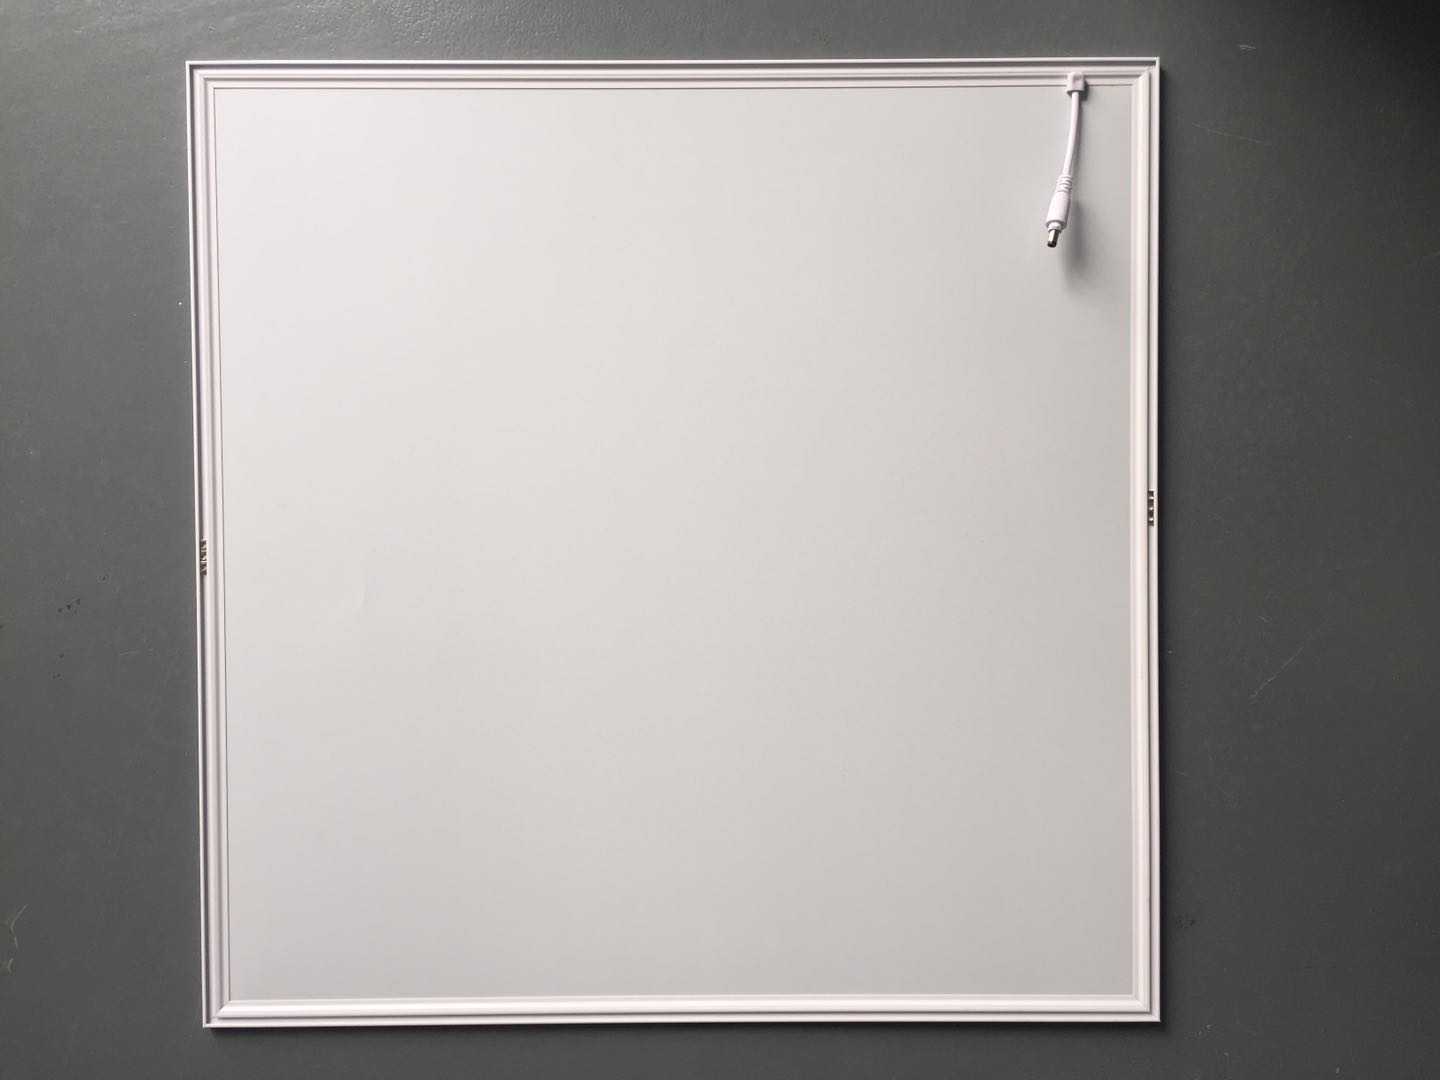 New Type LED Panel Light with larger lighting area and higher luminous flux